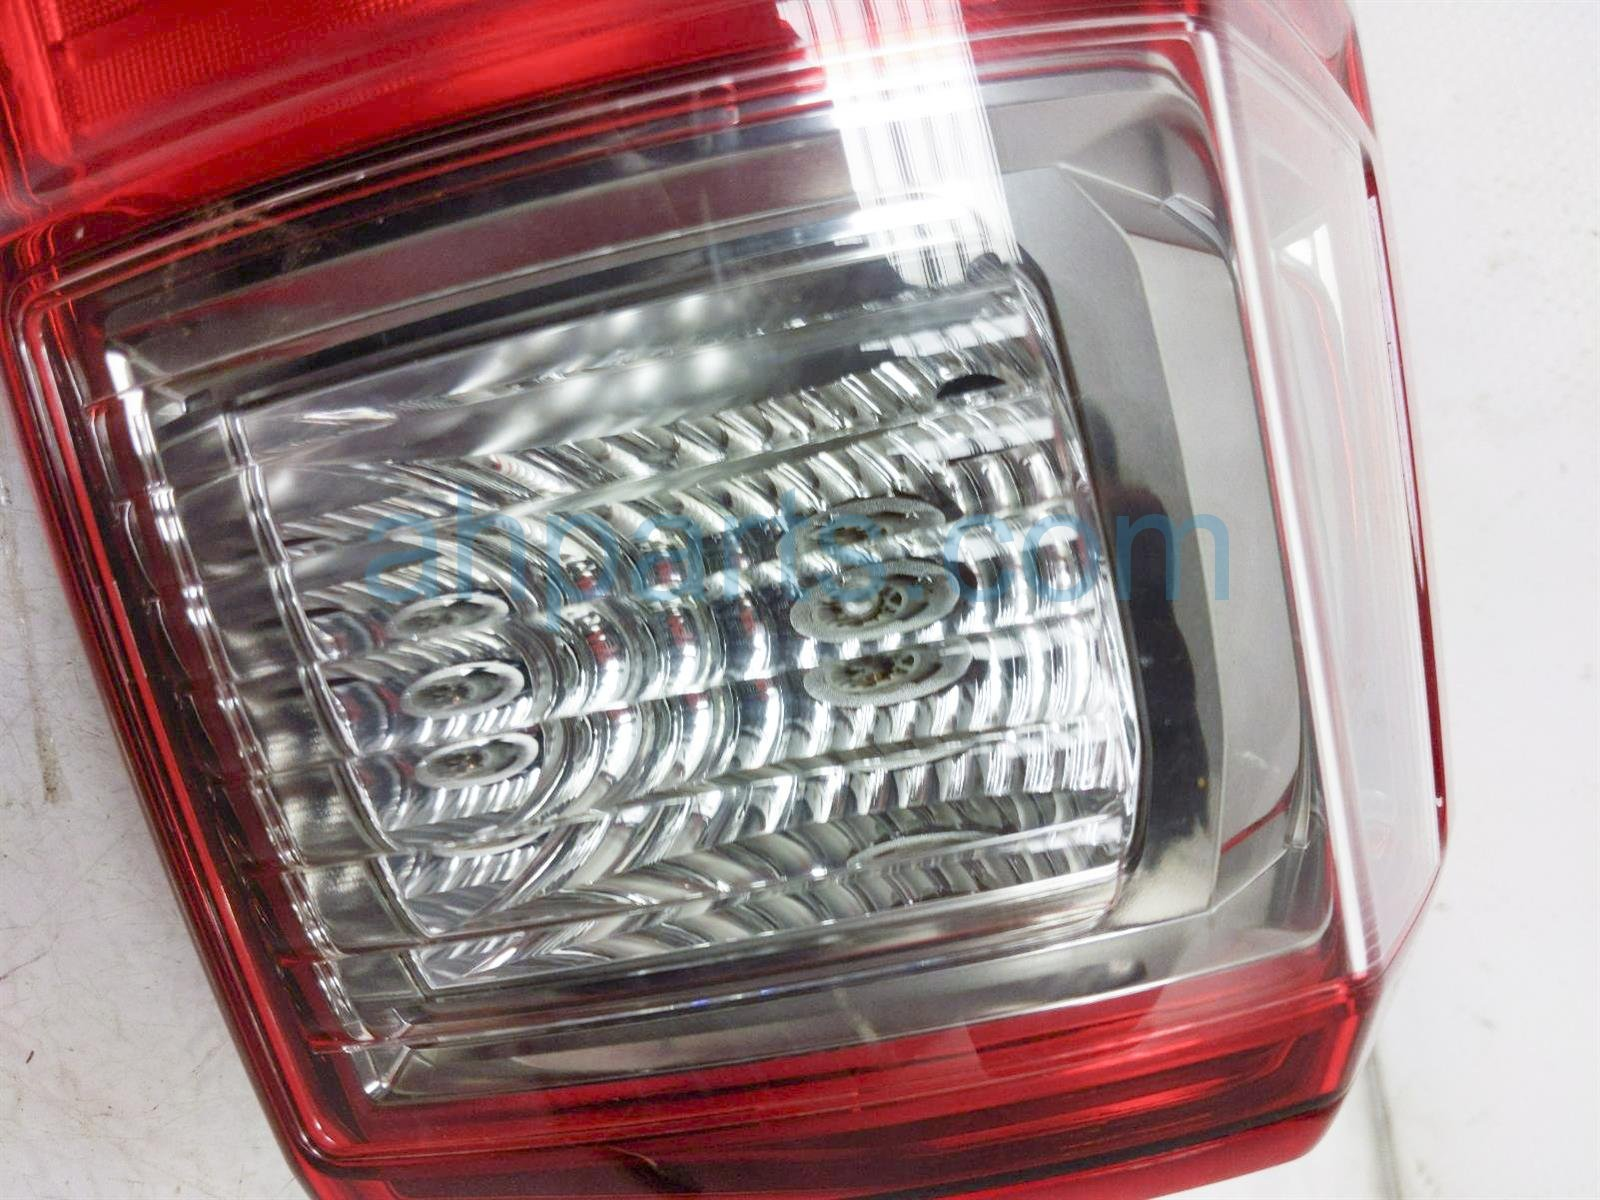 2017 Toyota Tacoma Light / Rear Passenger Tail Lamp (on Body) 81550 04170 Replacement